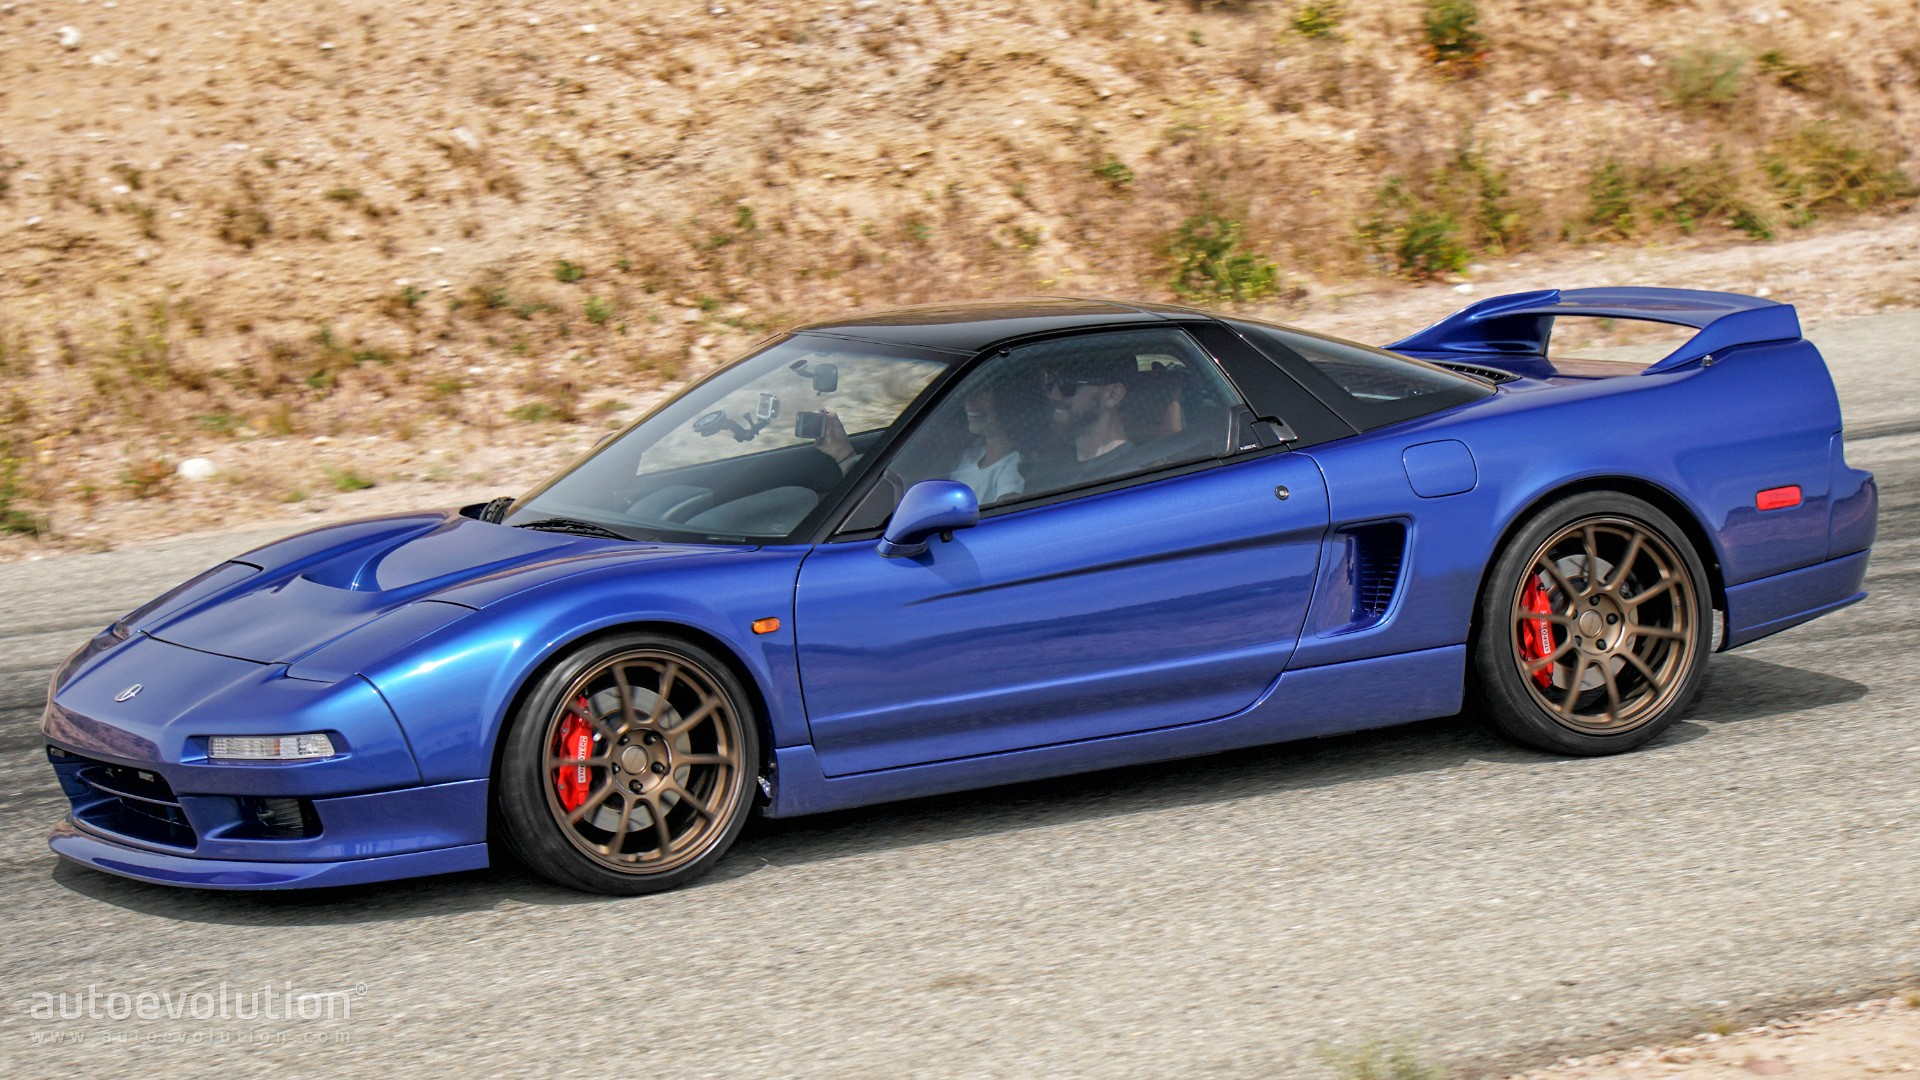 clarion builds resurrects and improves a 1991 acura nsx_5 clarion's newest dashboard marvel is a knockout autoevolution